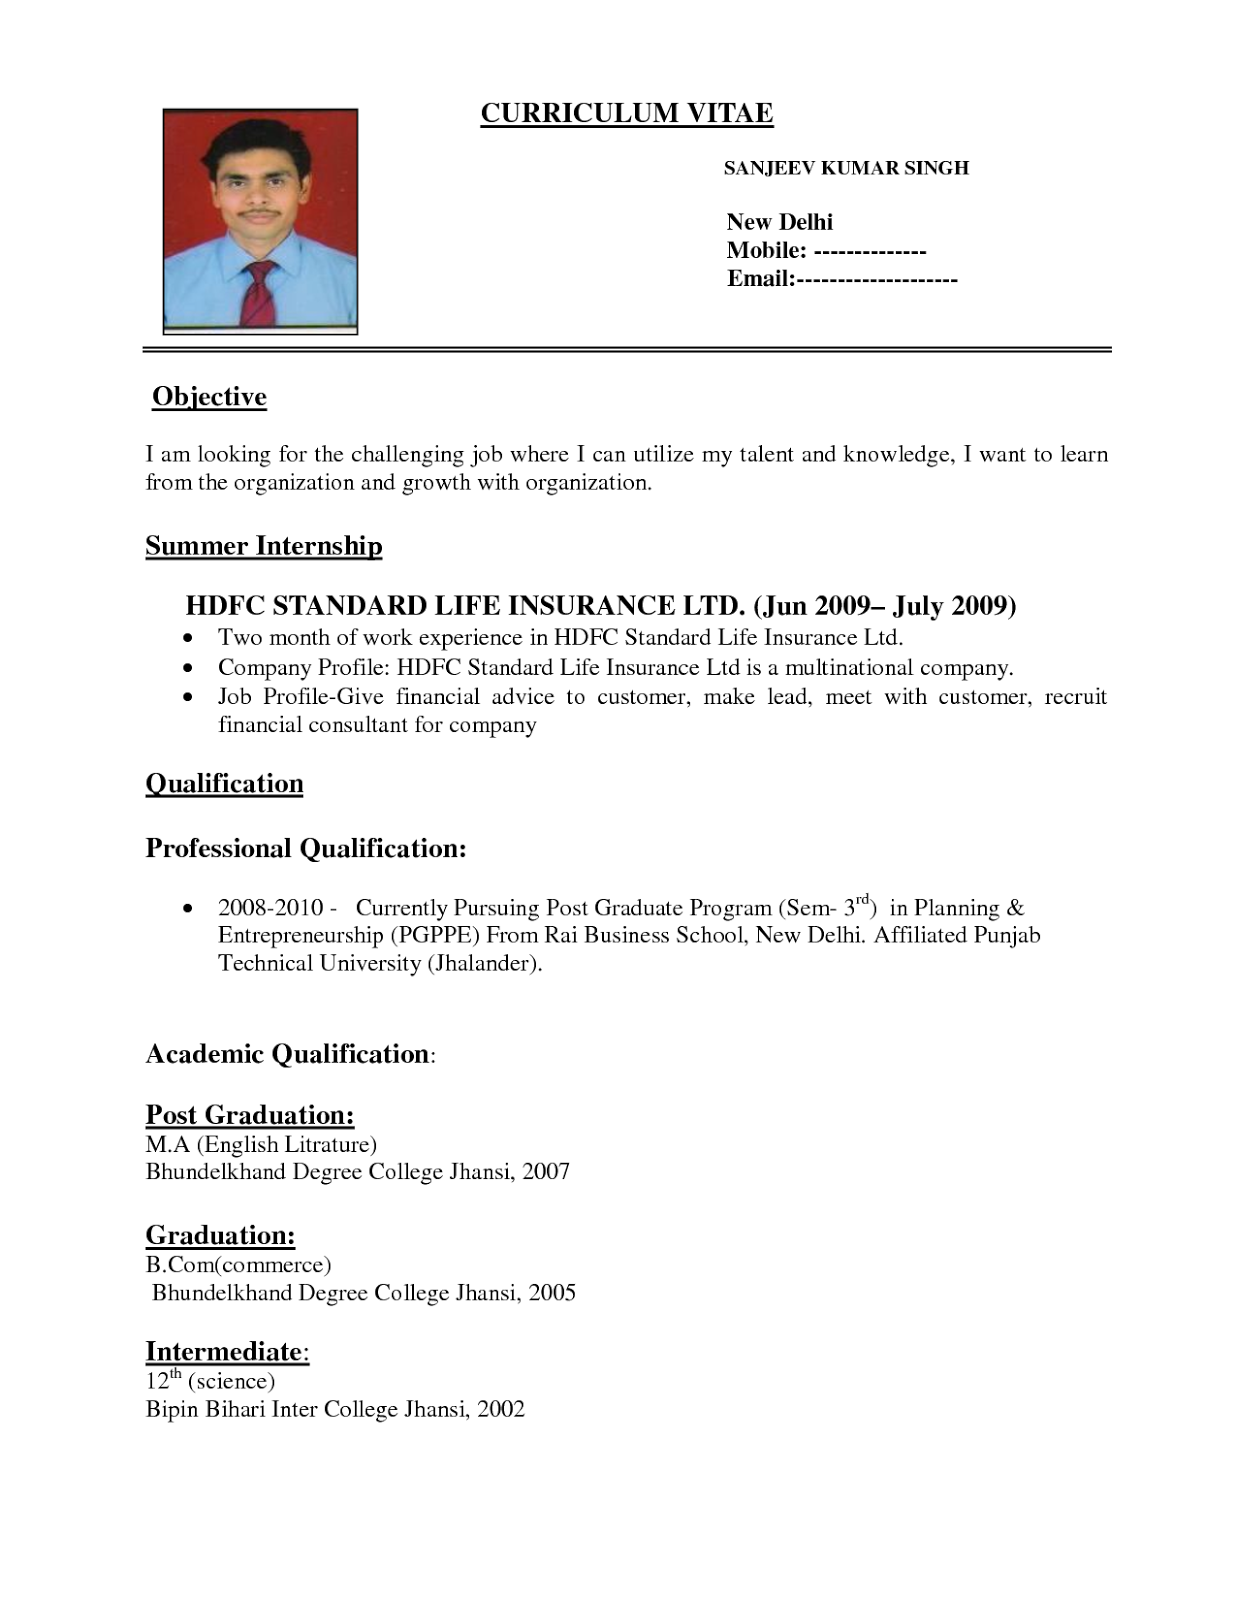 images of resume format format images resume